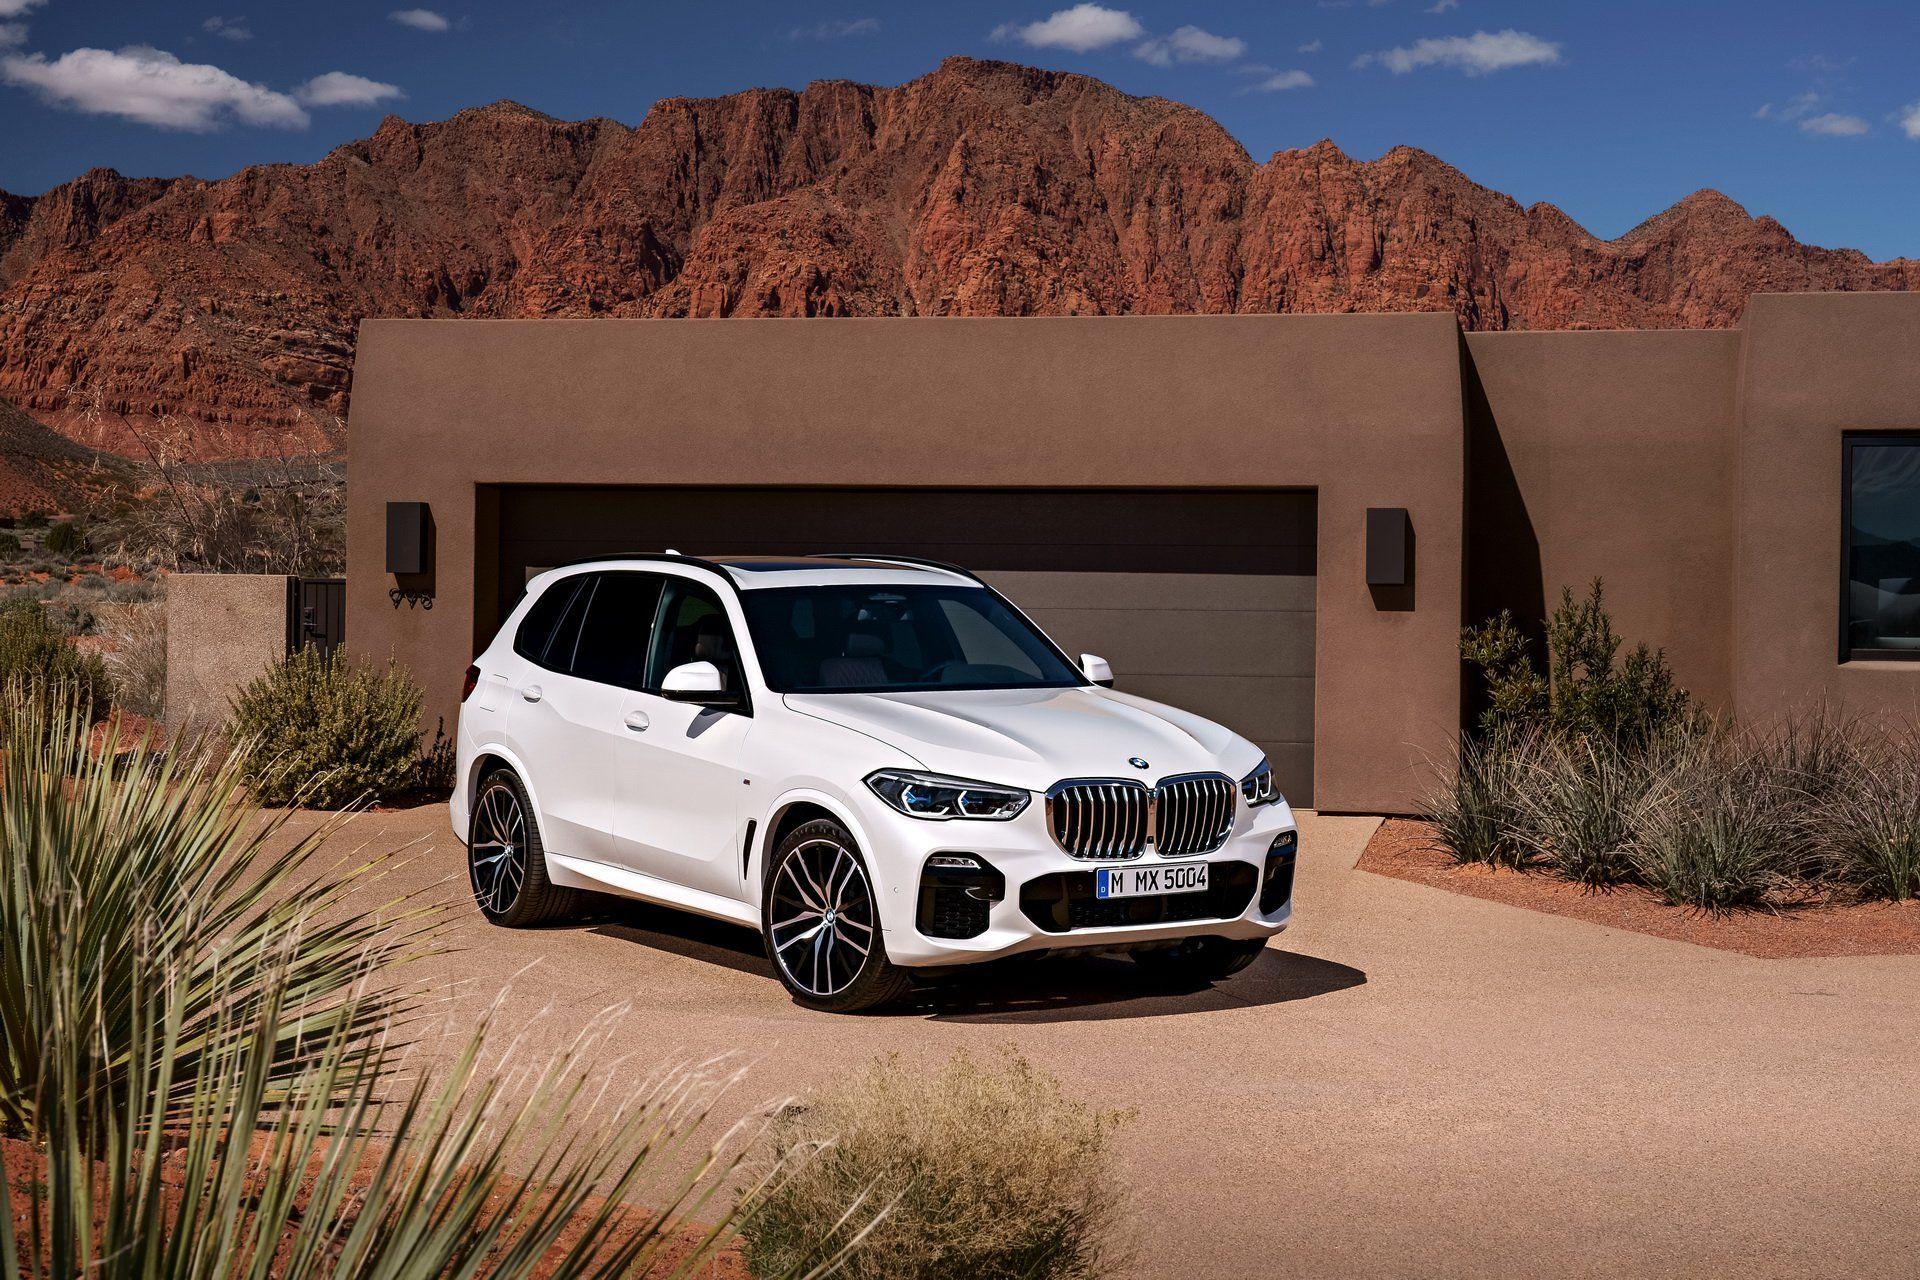 Bmw To Raise Prices Of X5 X6 In China Citing Higher Tariffs On U S Car Imports Carscoops Bmw Bmw X5 Bmw Suv